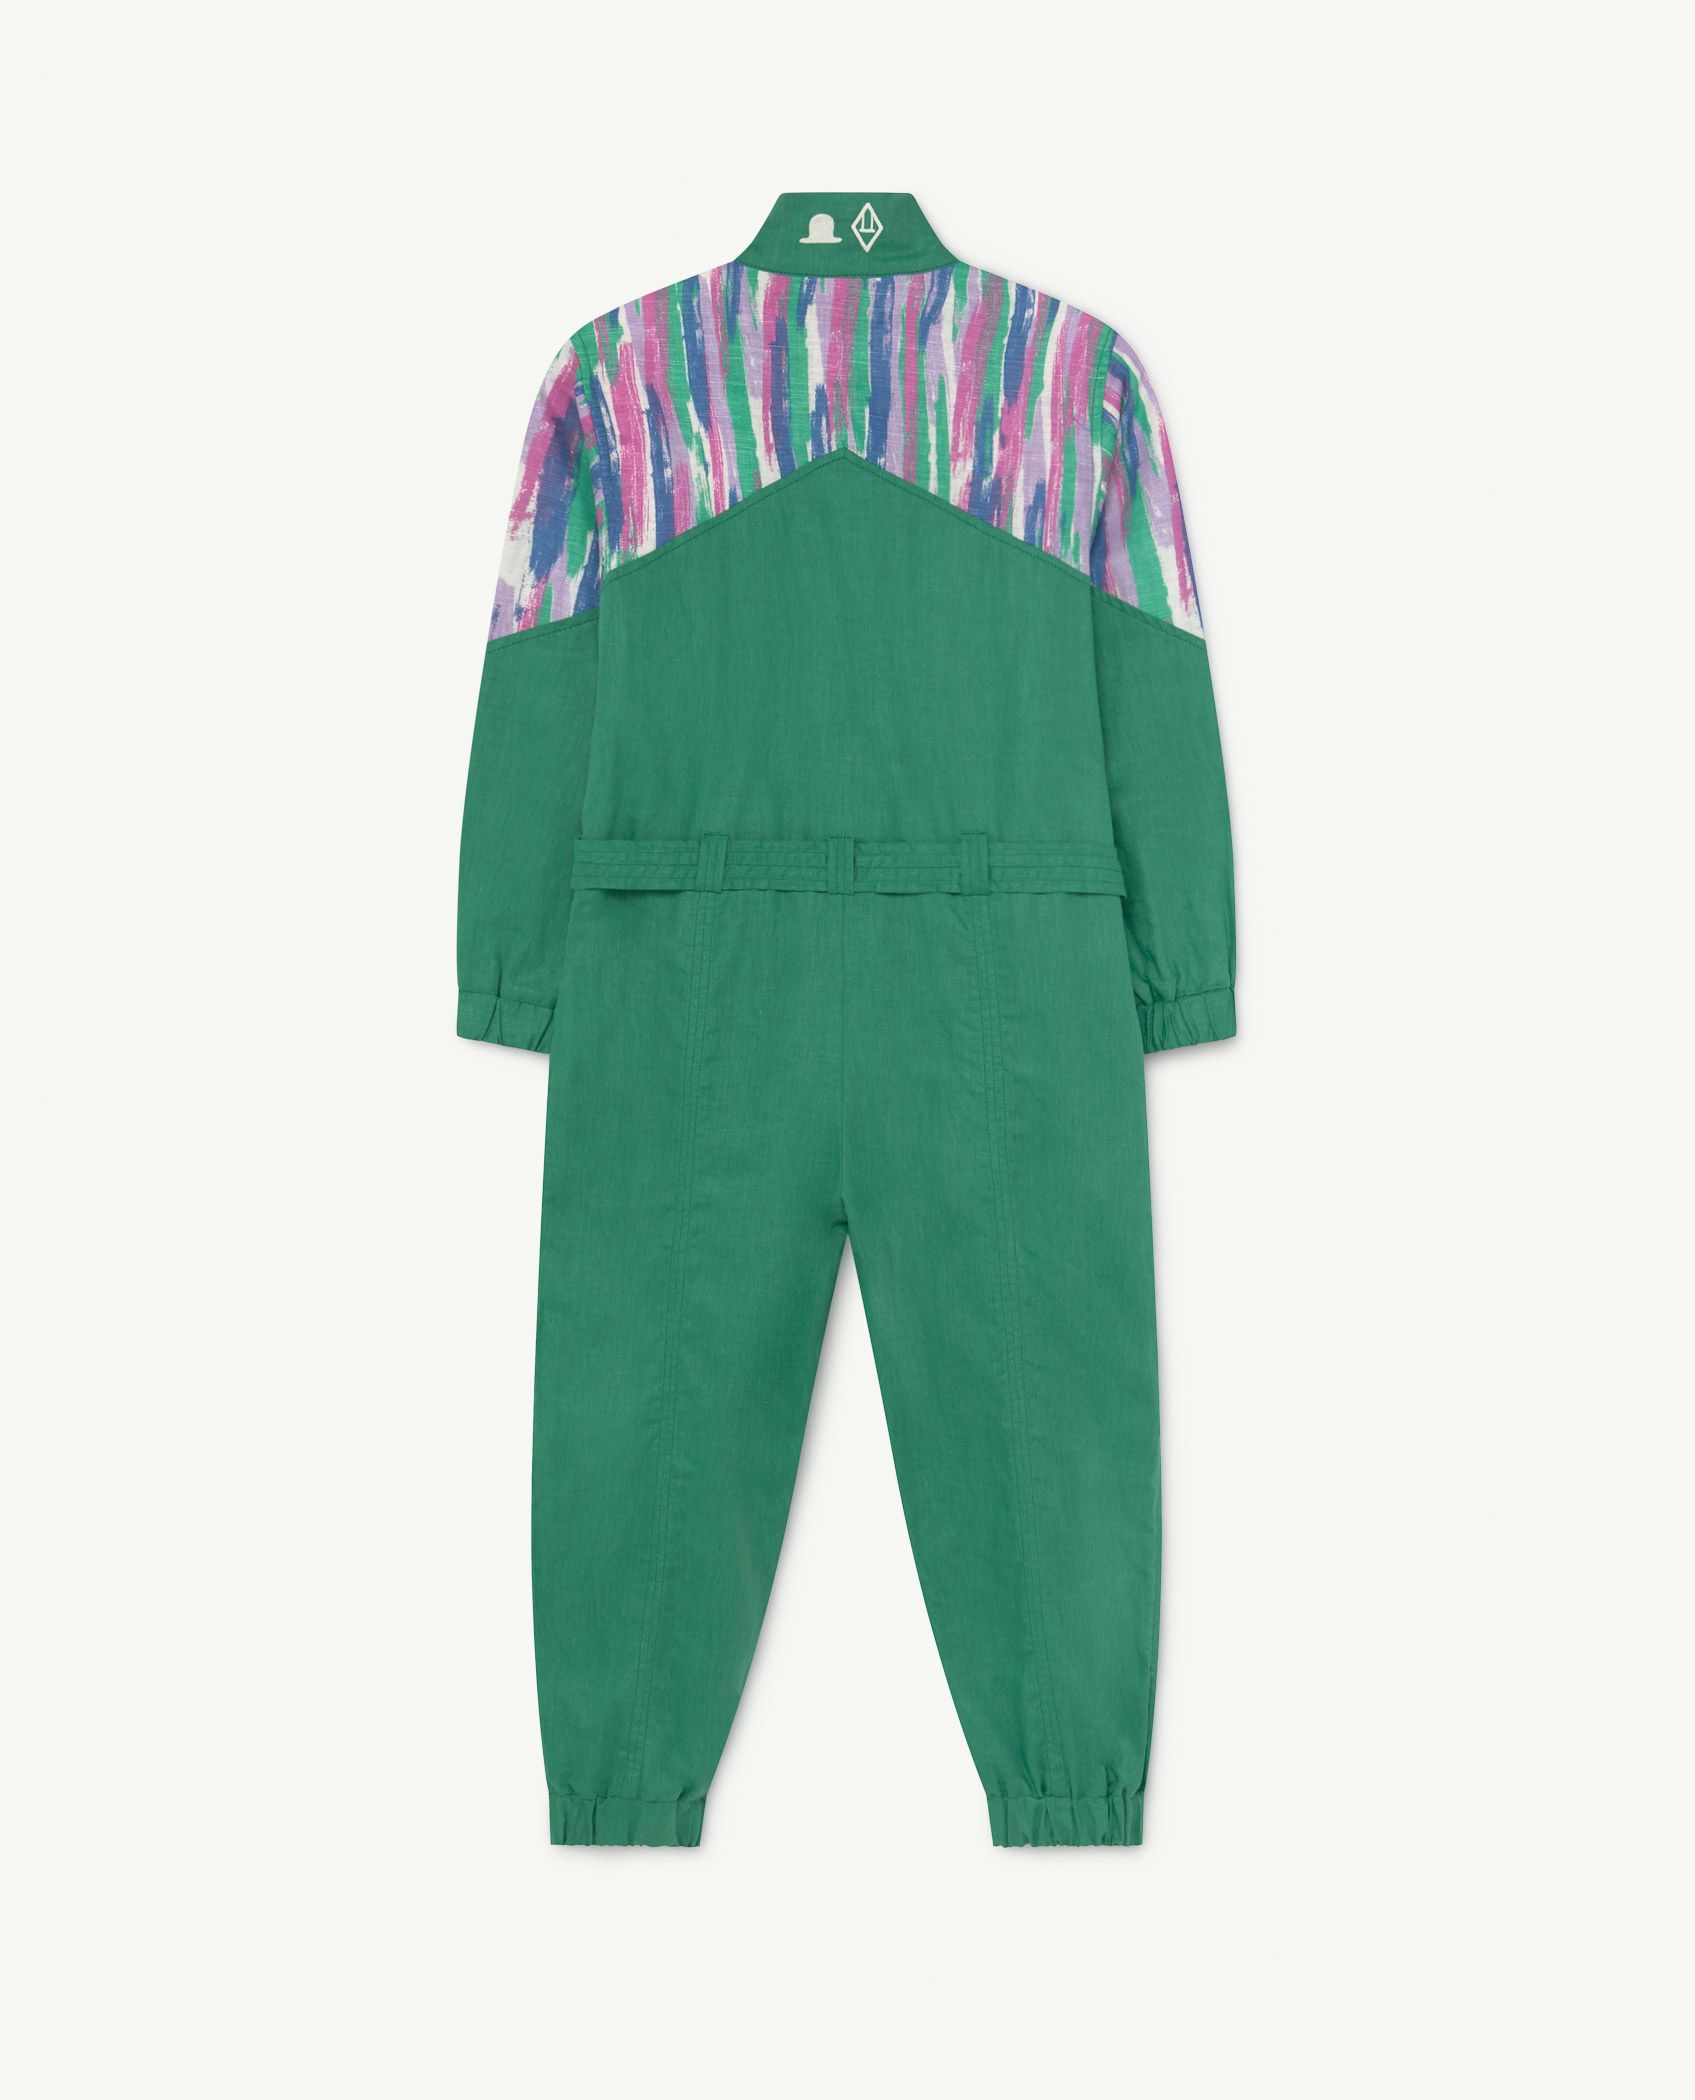 Green Colors Grasshopper Jumpsuit img-2